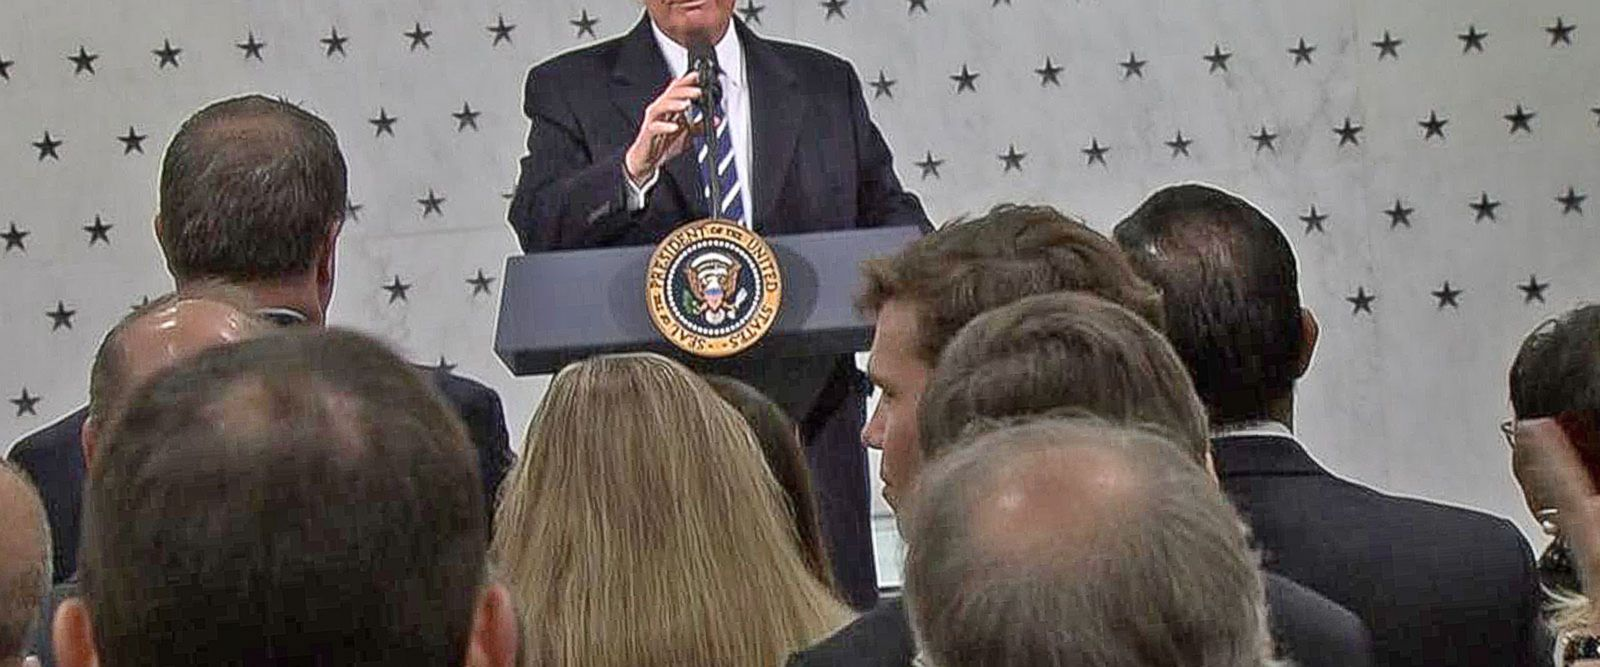 VIDEO: Trump Administration Battles Inauguration Numbers